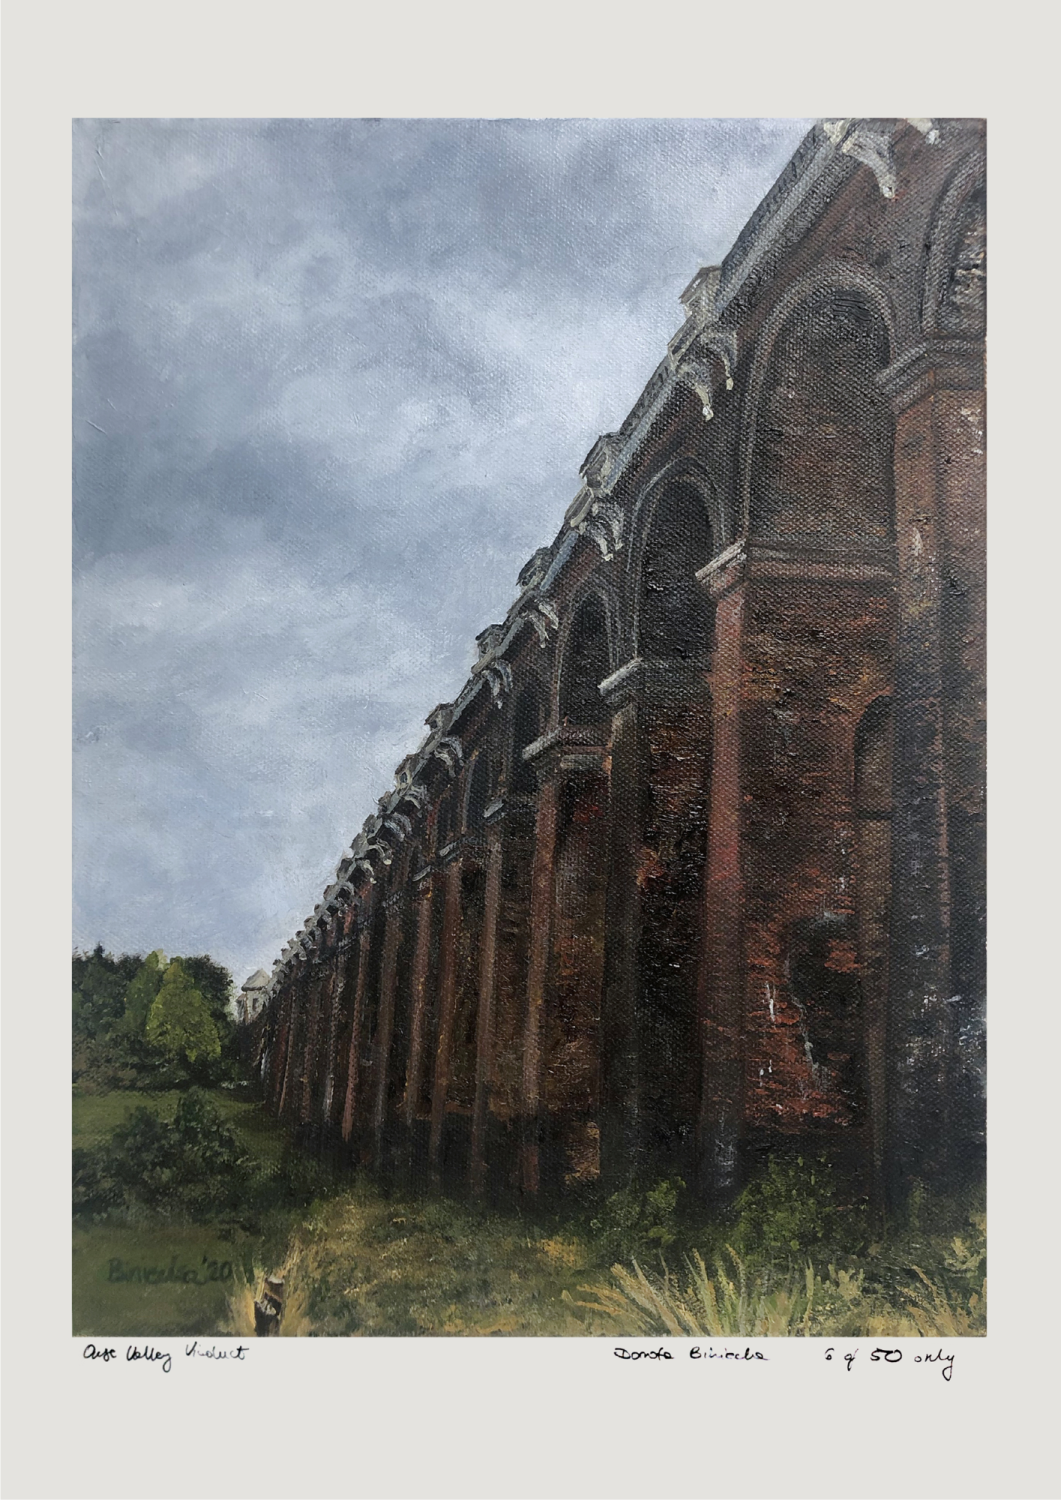 Ouse Valley Viaduct Giclée Print A3